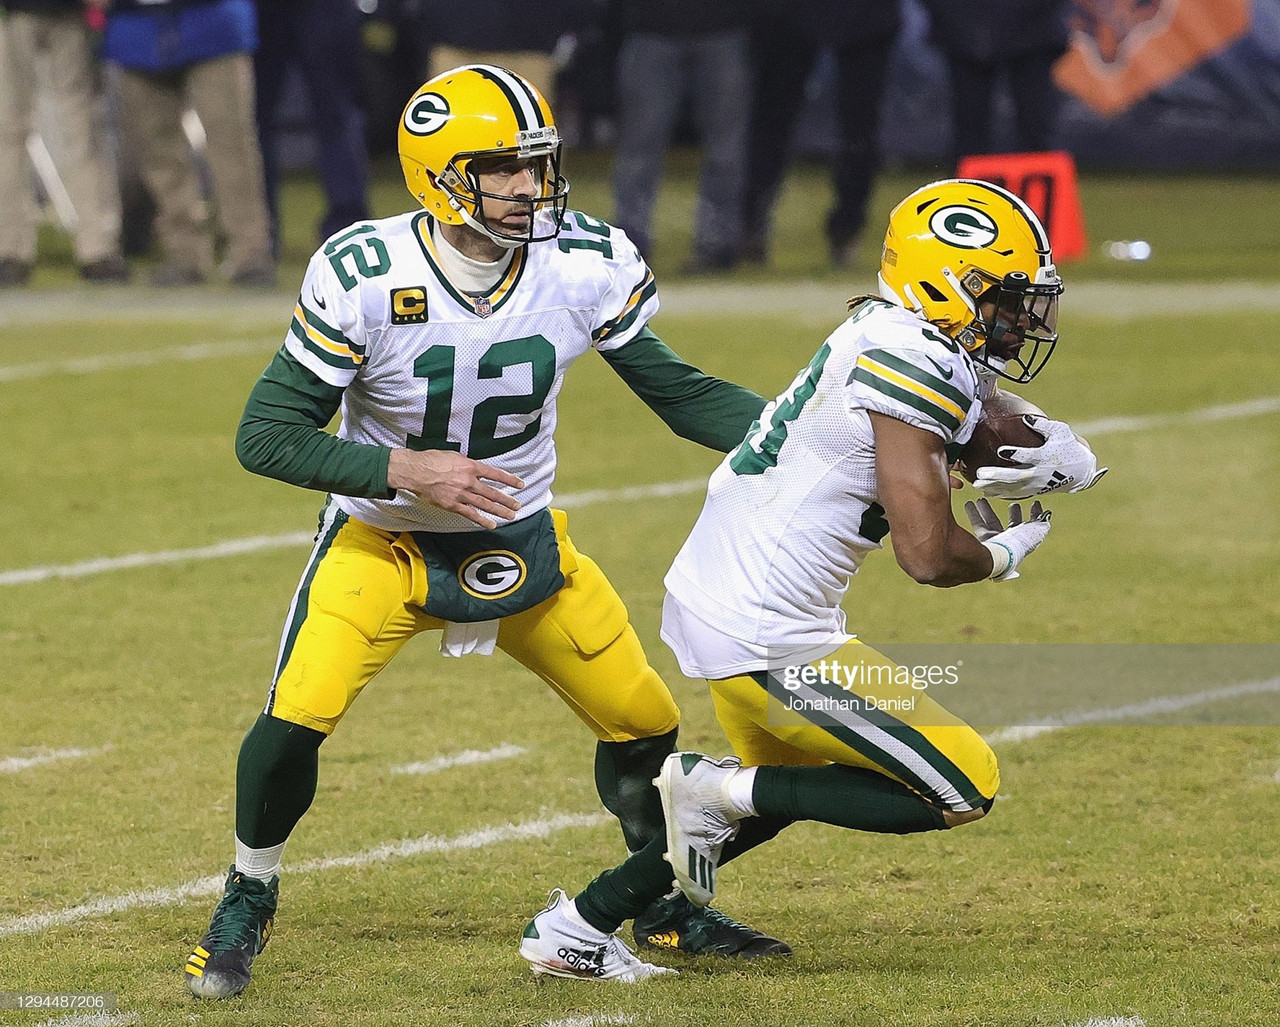 Aaron Rodgers and Aaron Jones gear up for another shot at the Super Bowl. (Photo by Jonathan Daniel/Getty Images)